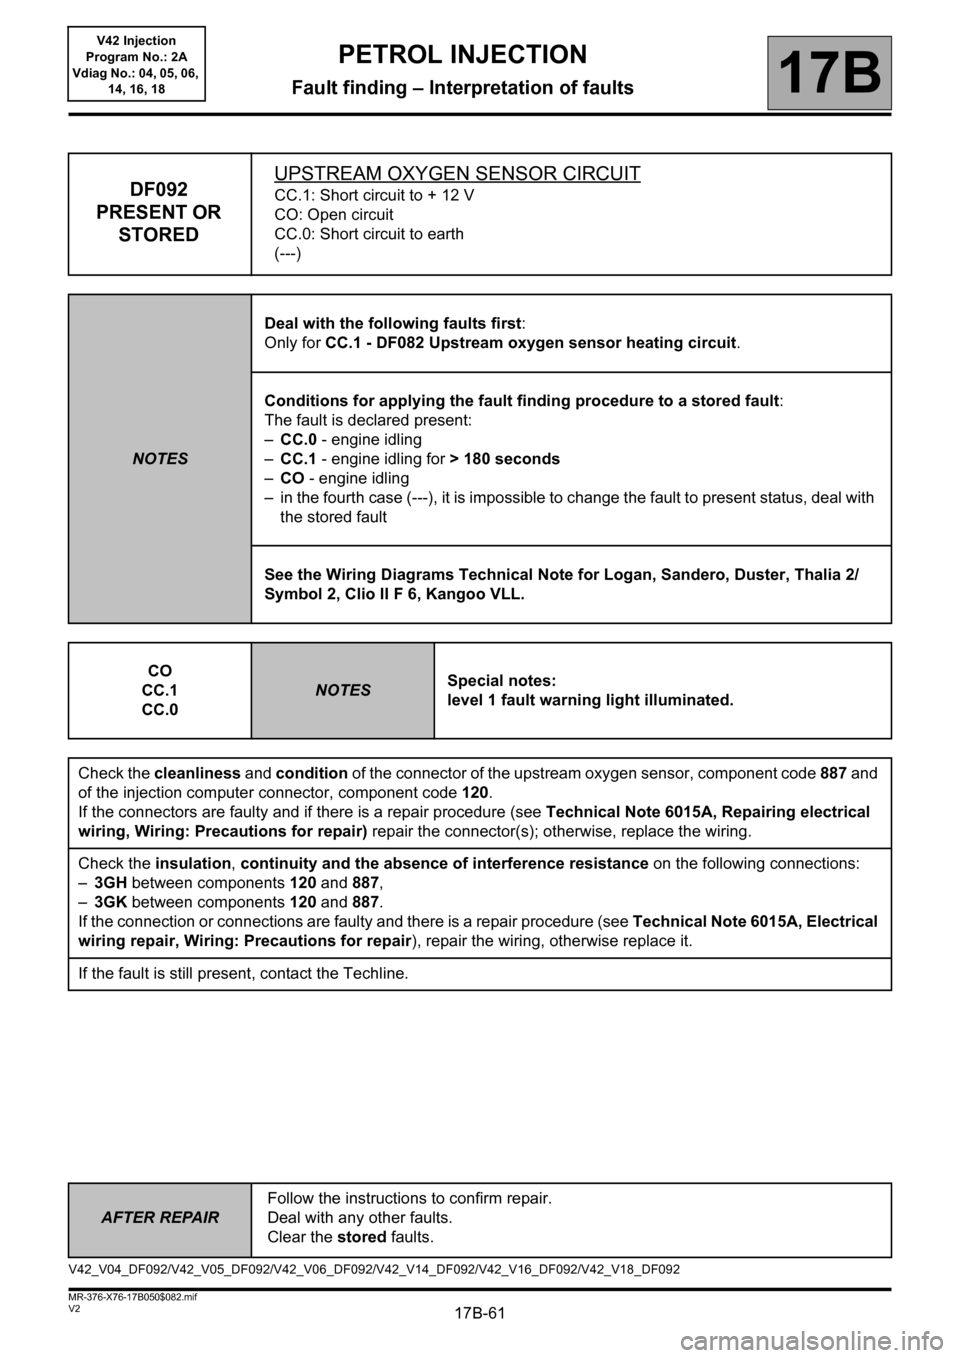 RENAULT KANGOO 2013 X61 / 2.G Petrol V42 Injection Workshop Manual, Page 61